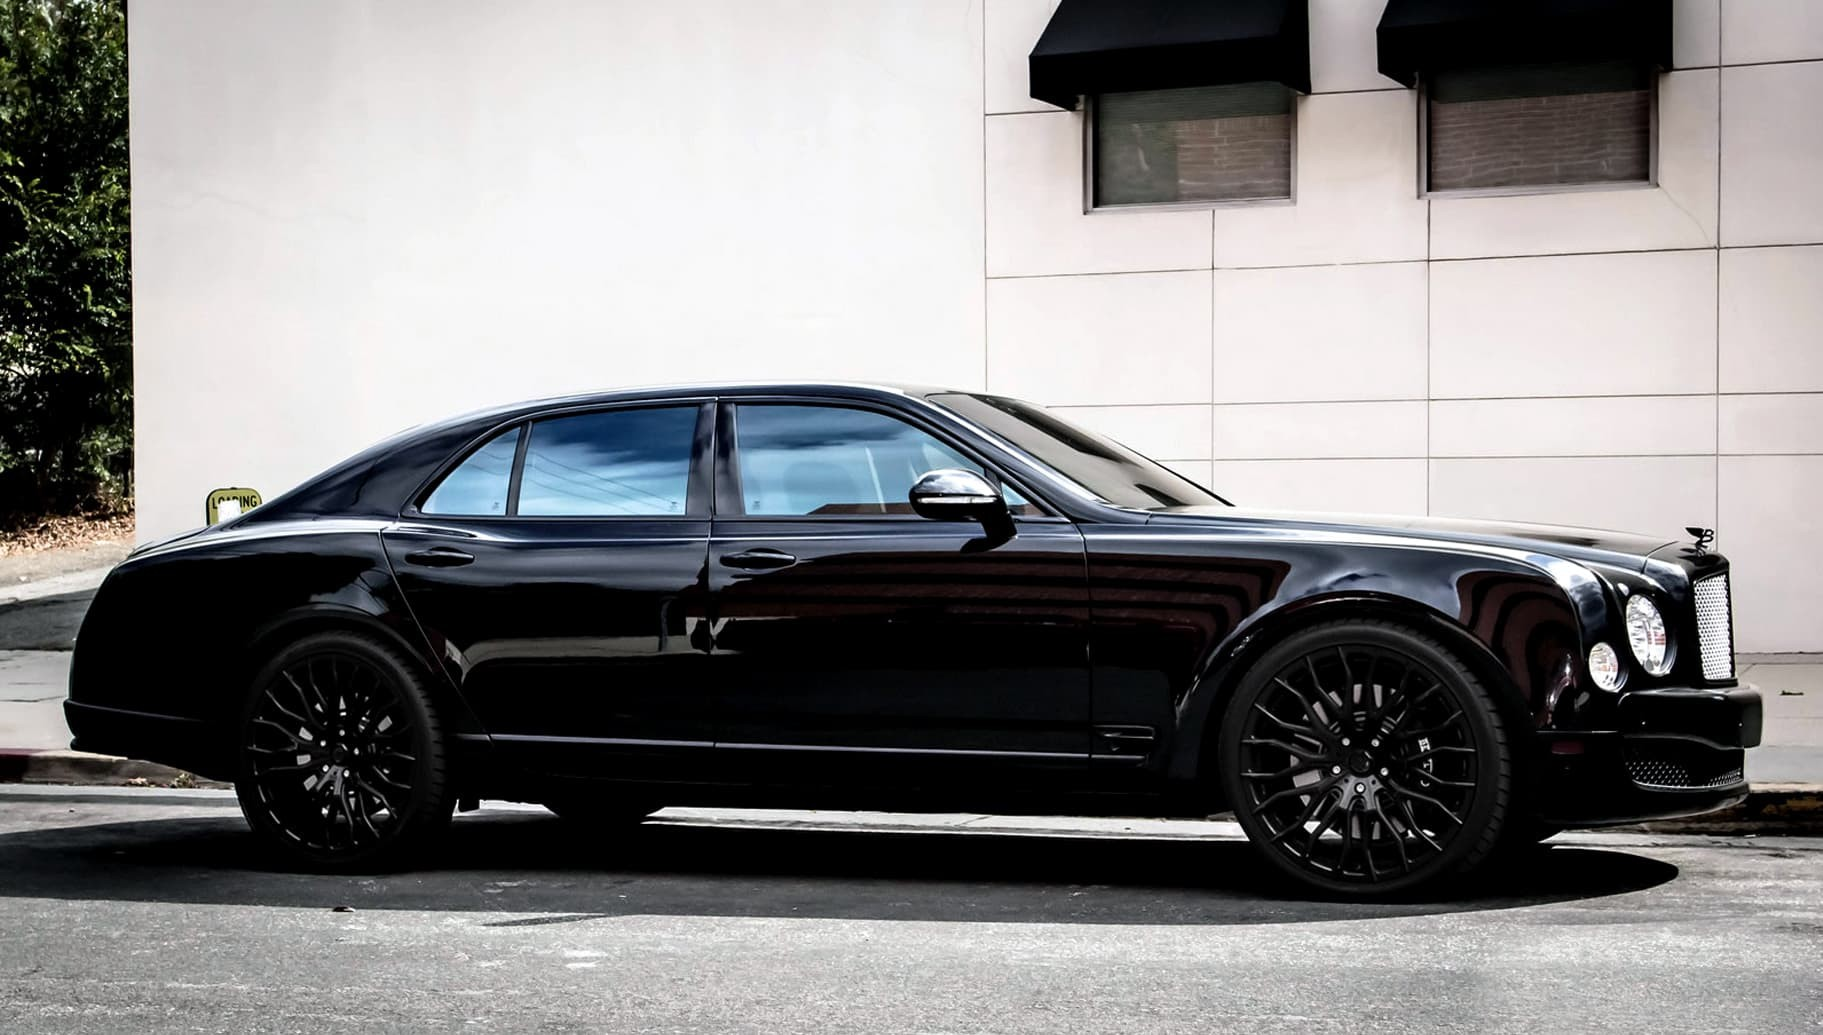 All black LZ-104 on the 2014 Bentley Mulsanne.